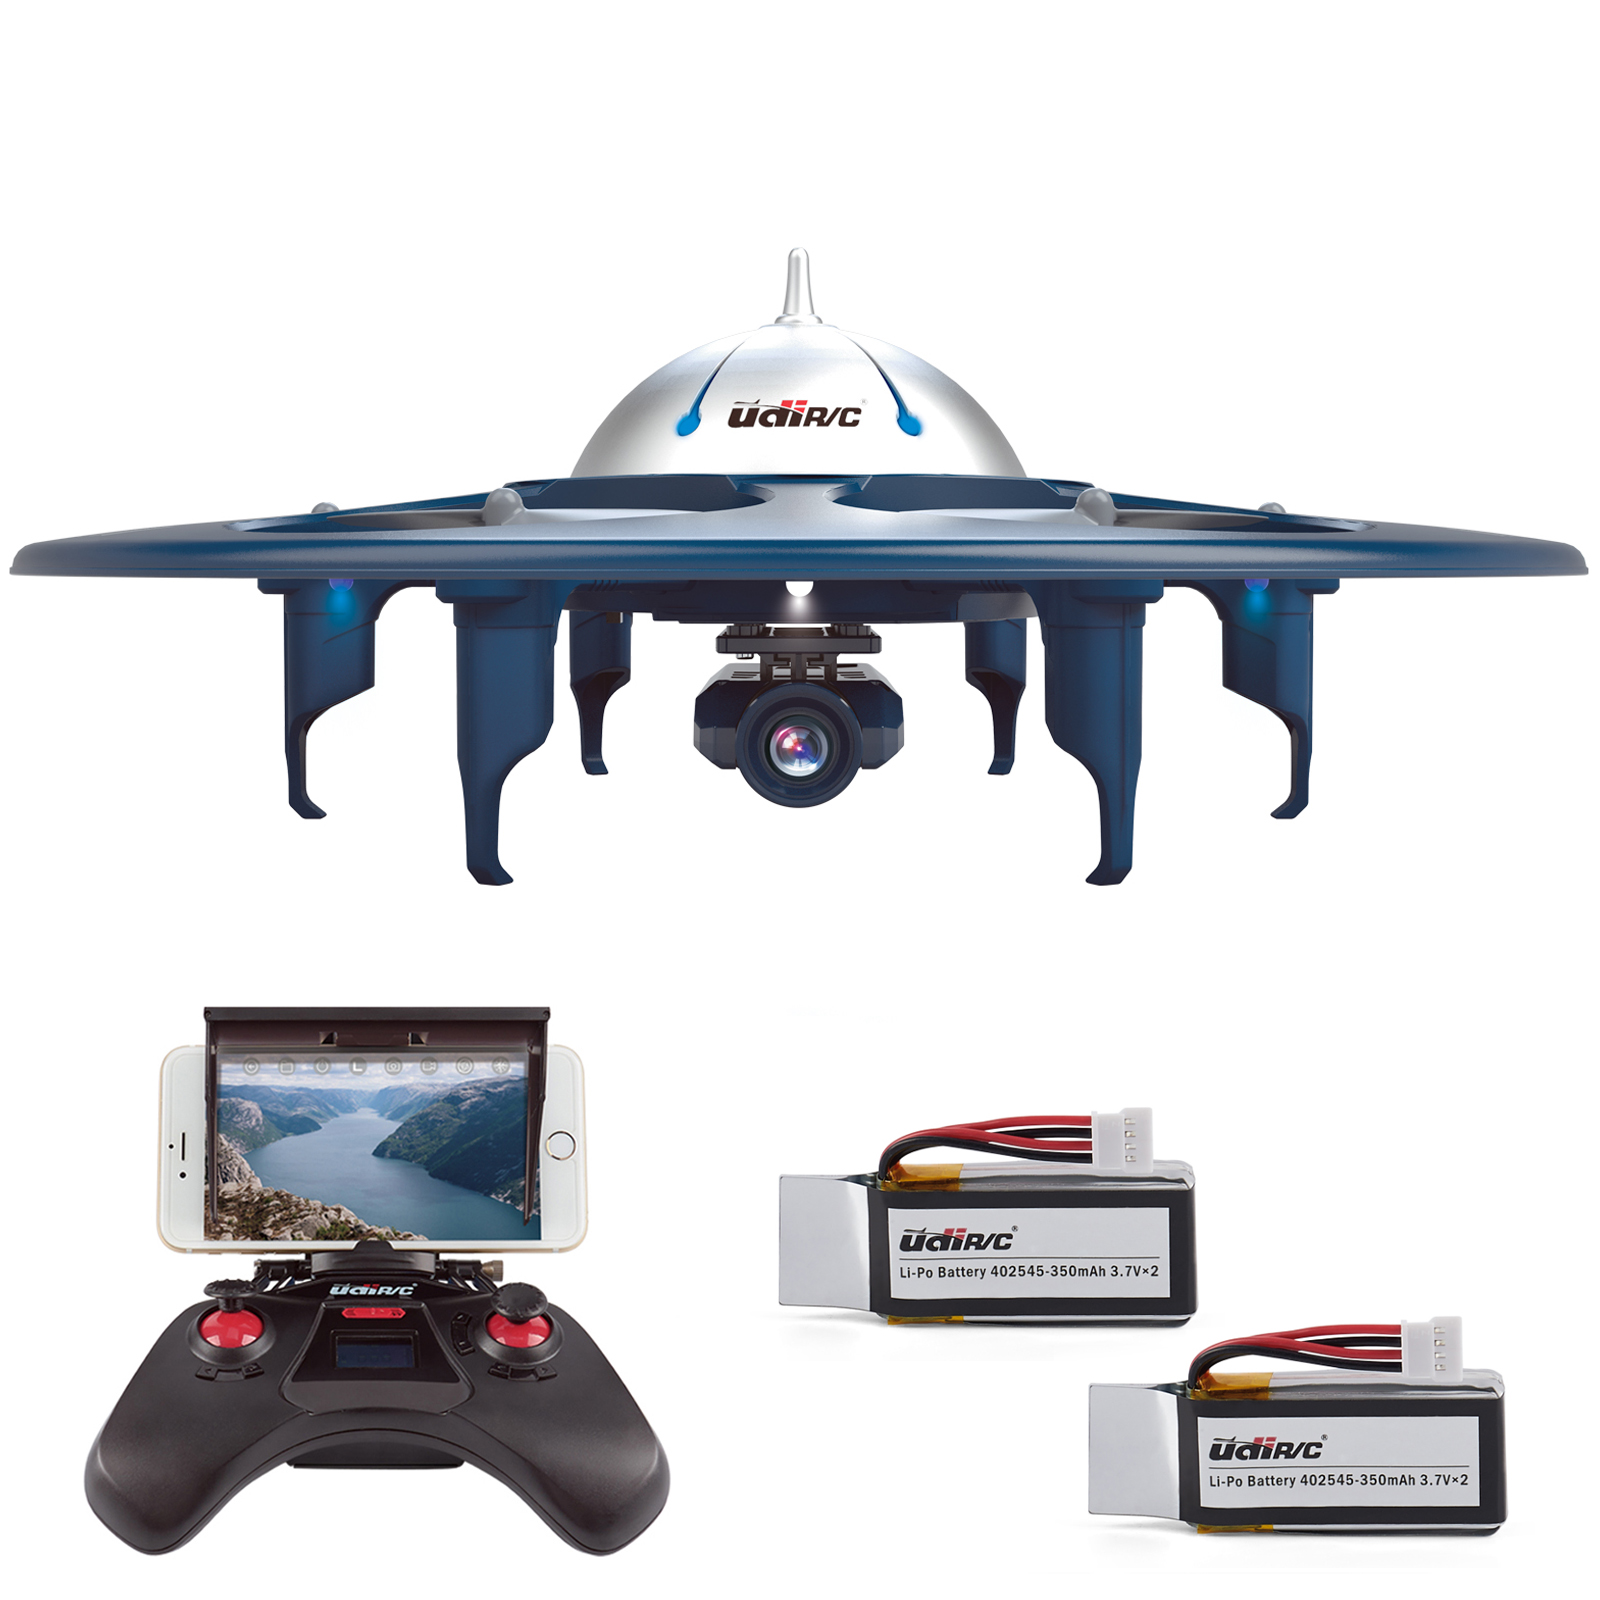 Cheerwing U845 Wifi FPV 2.4Ghz RC Headless Quadcopter Drone UFO with 720P HD Camera, iOS & Android Phone Control, Gravity Induction and VR Split Mode, Includes Bonus Battery